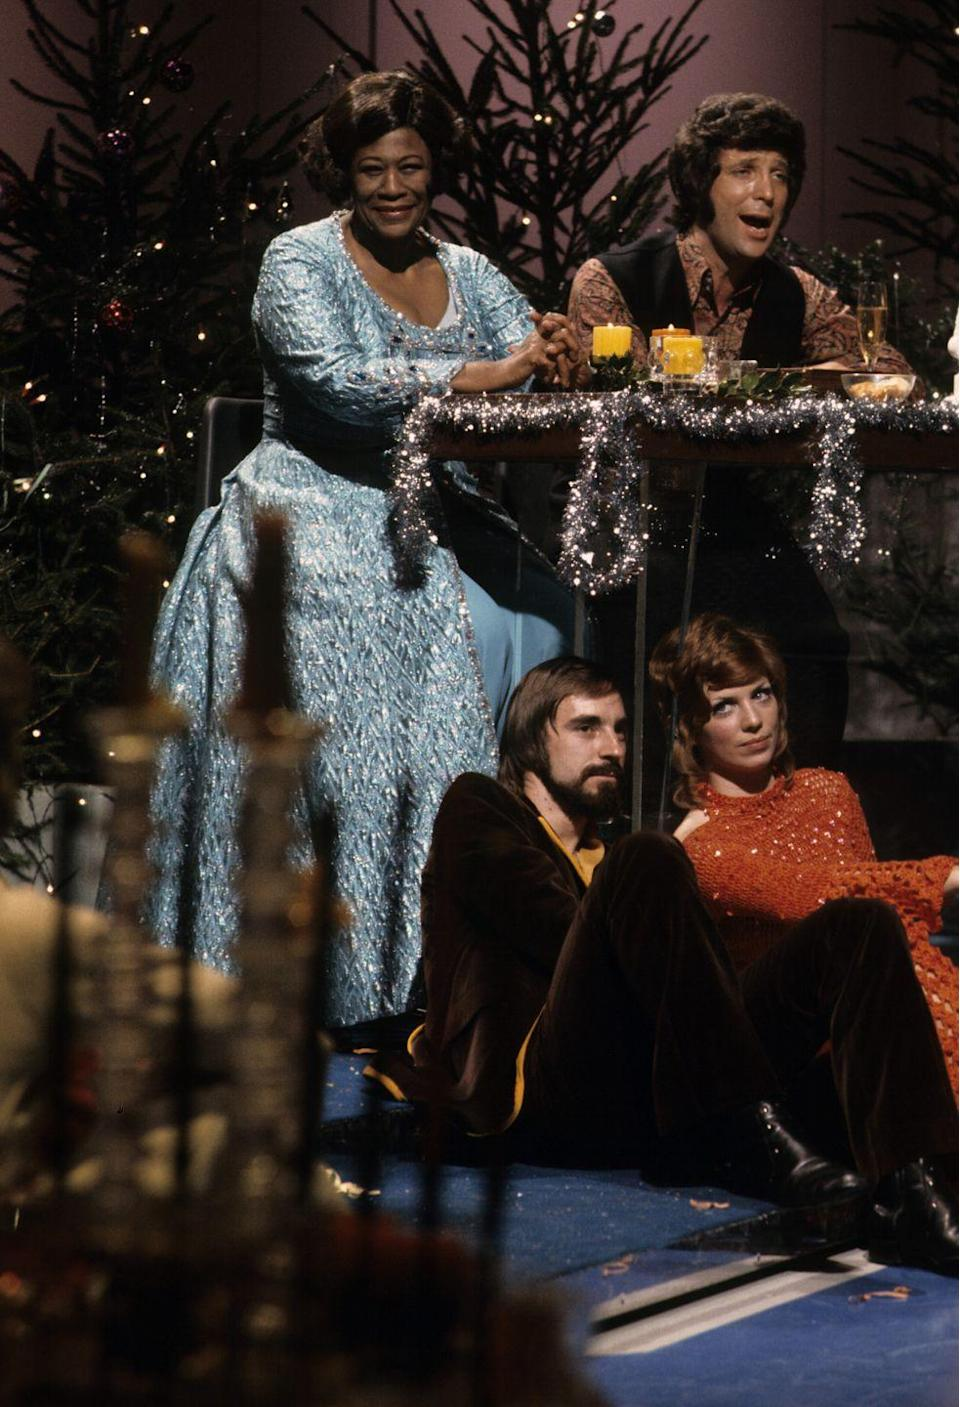 <p>Ella Fitzgerald joins '70s star, Tom Jones, on the set of his show <em>This Is Tom Jones</em> for a special holiday episode. The jazz singer wore a blue sparkly dress amidst a set full of Christmas decorations. </p>